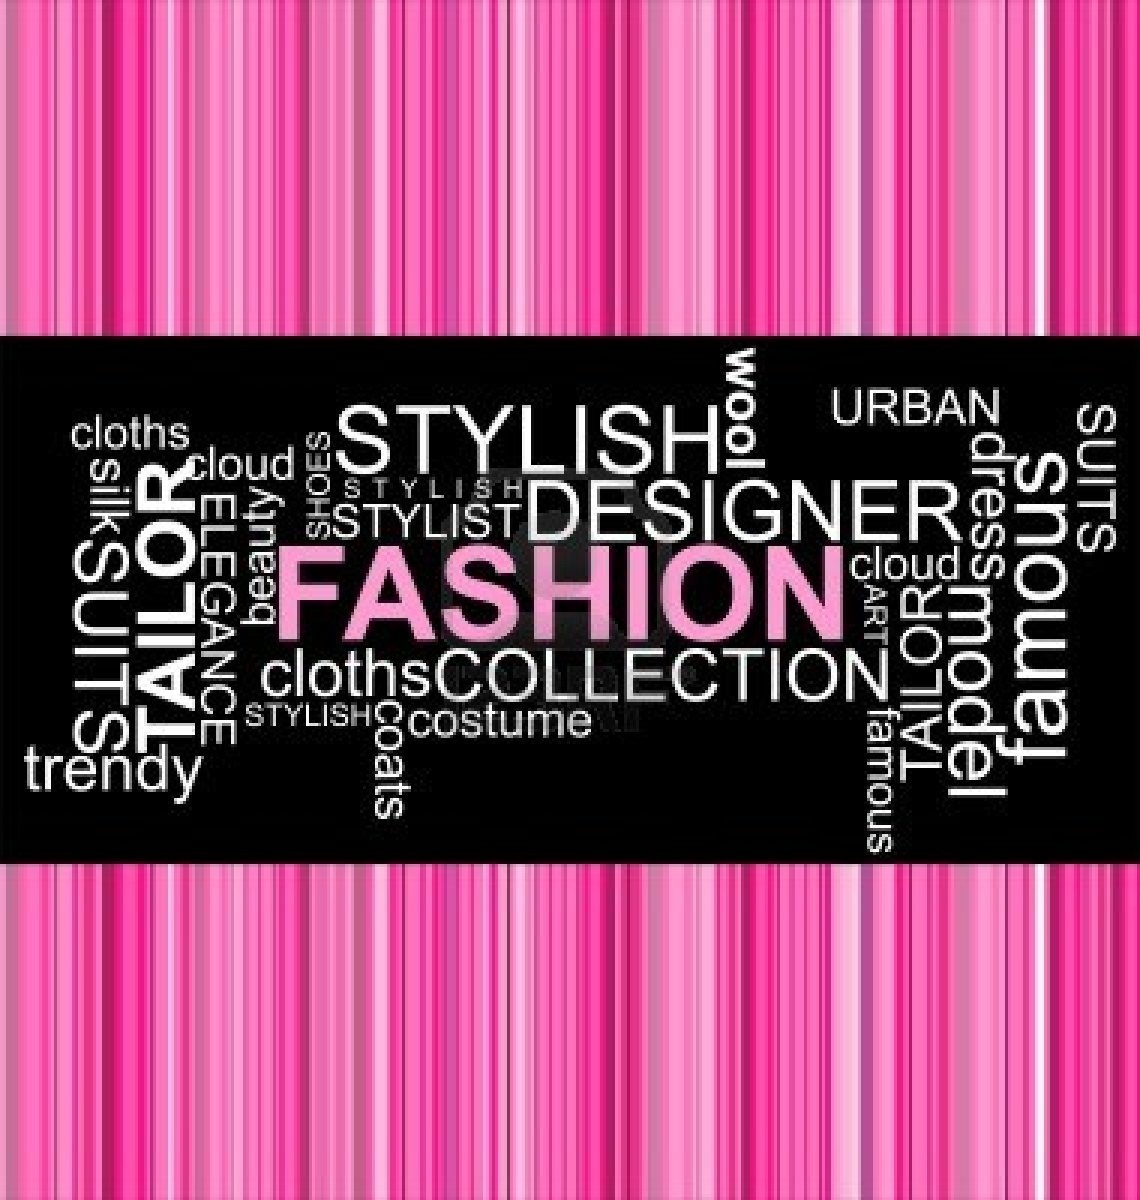 the-word-fashion-in-pink-fashion-word-collage-wzvgiuir-593148086